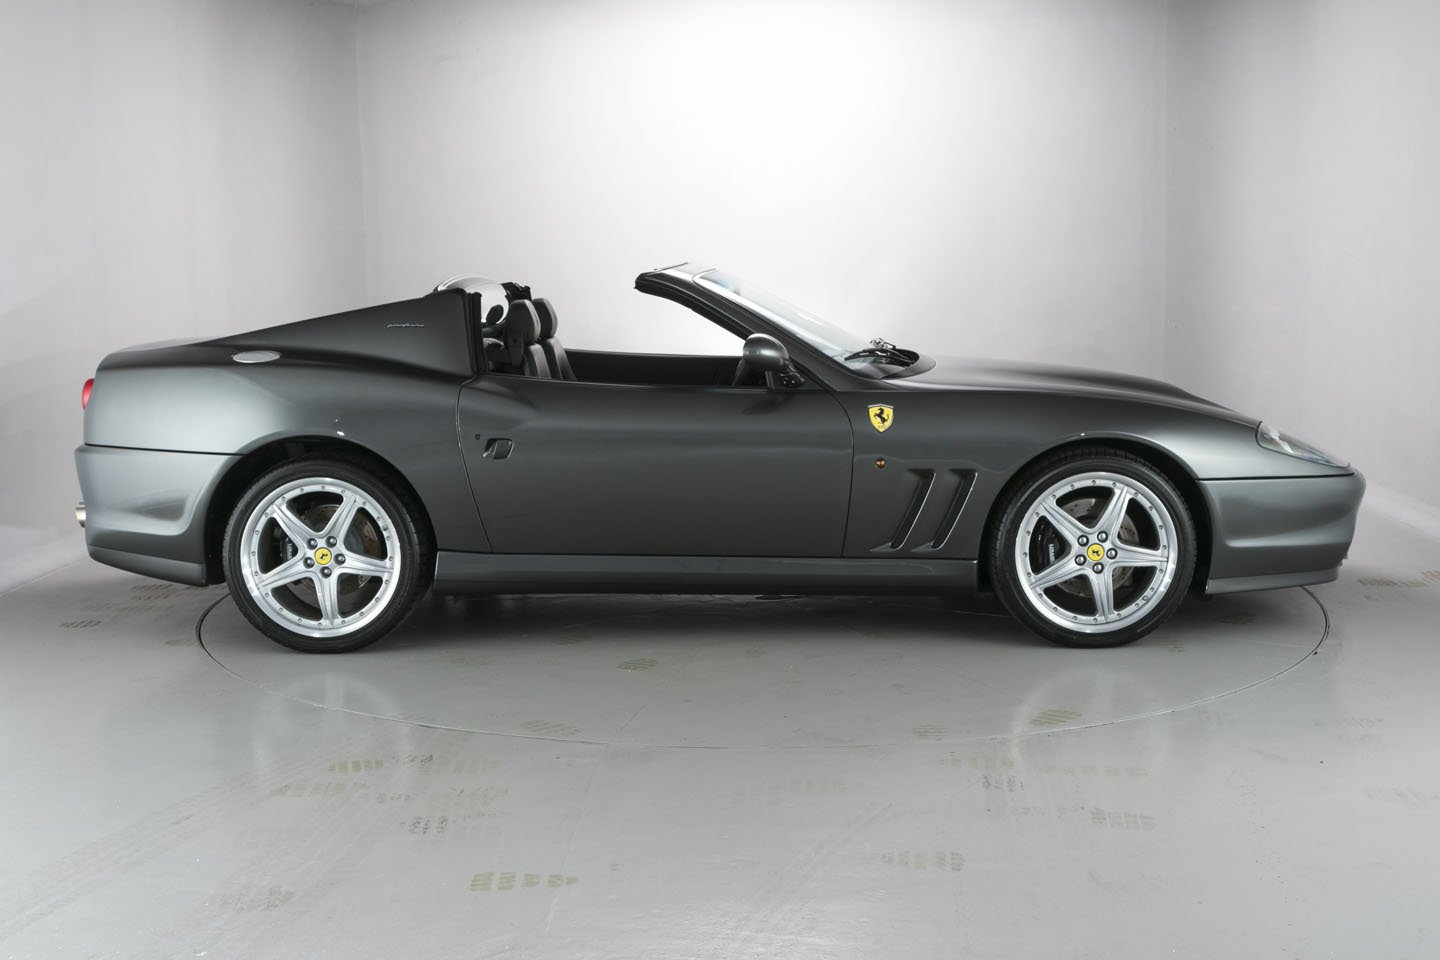 1234295_Ferrari 575 side roof down